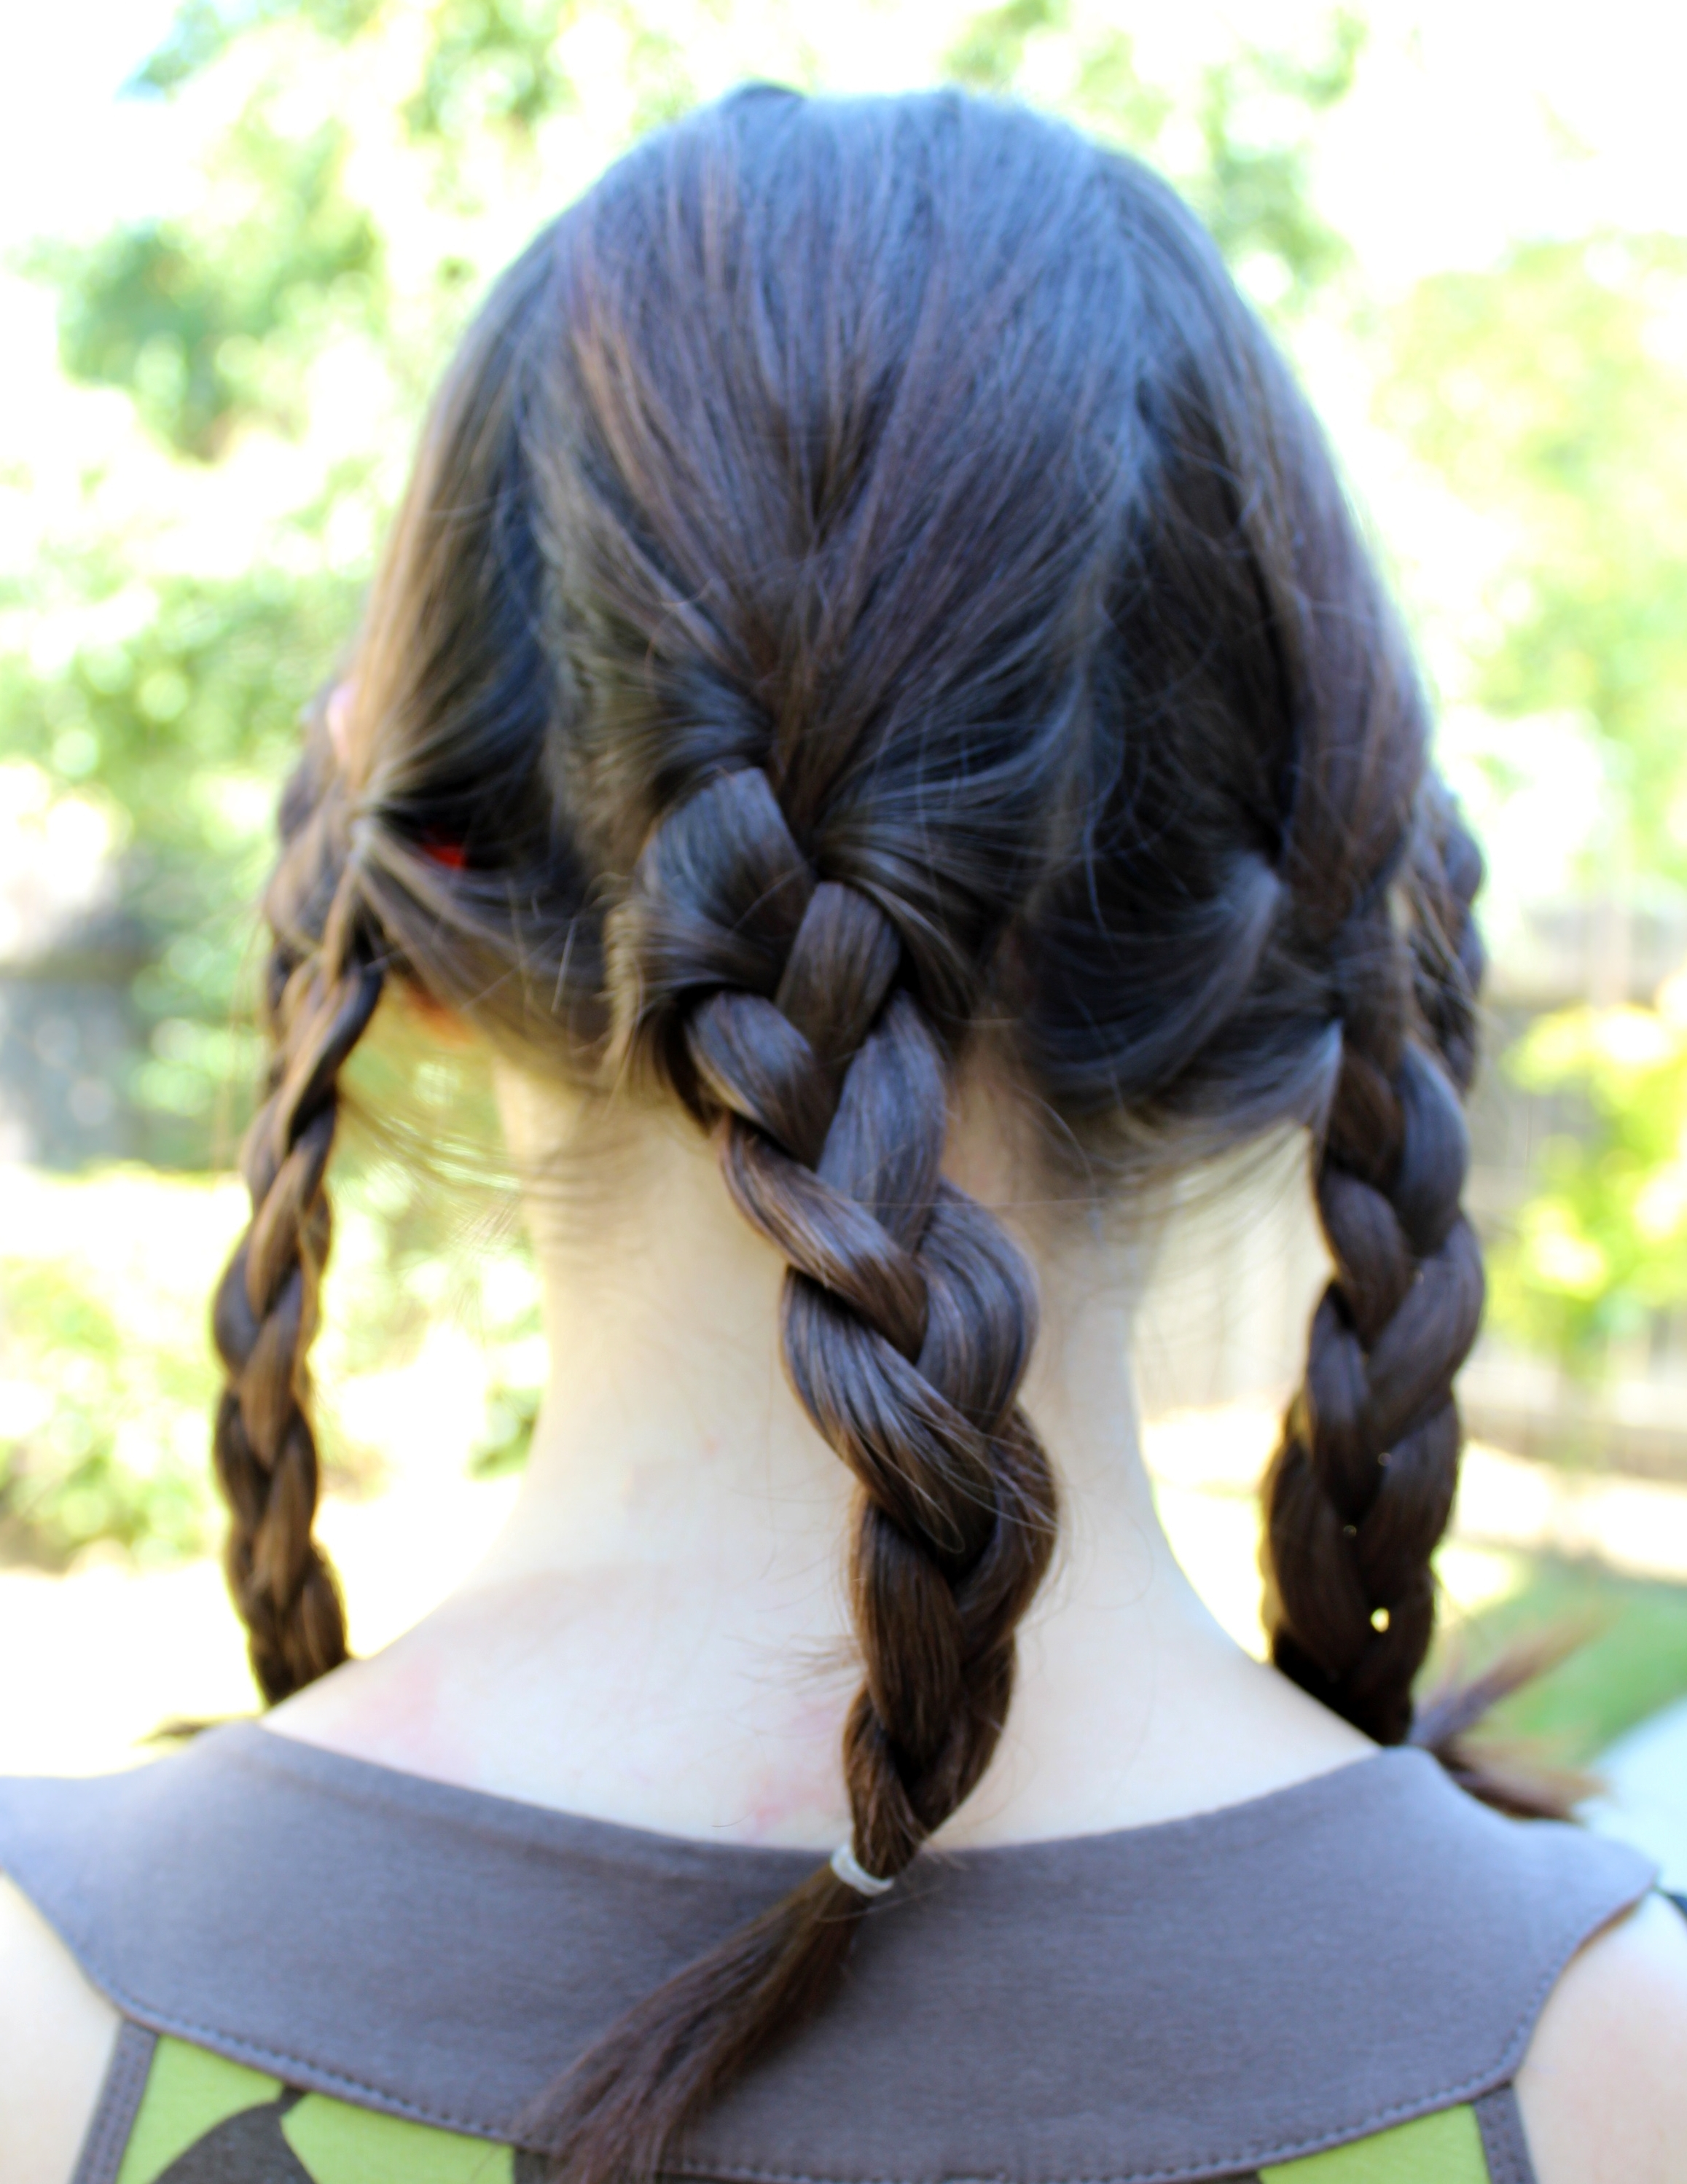 Braid Updo Hairstyles Easy Braided Updo Tutorial Makeup Geek With Regard To Easy Braided Updo Hairstyles For Long Hair (View 6 of 15)